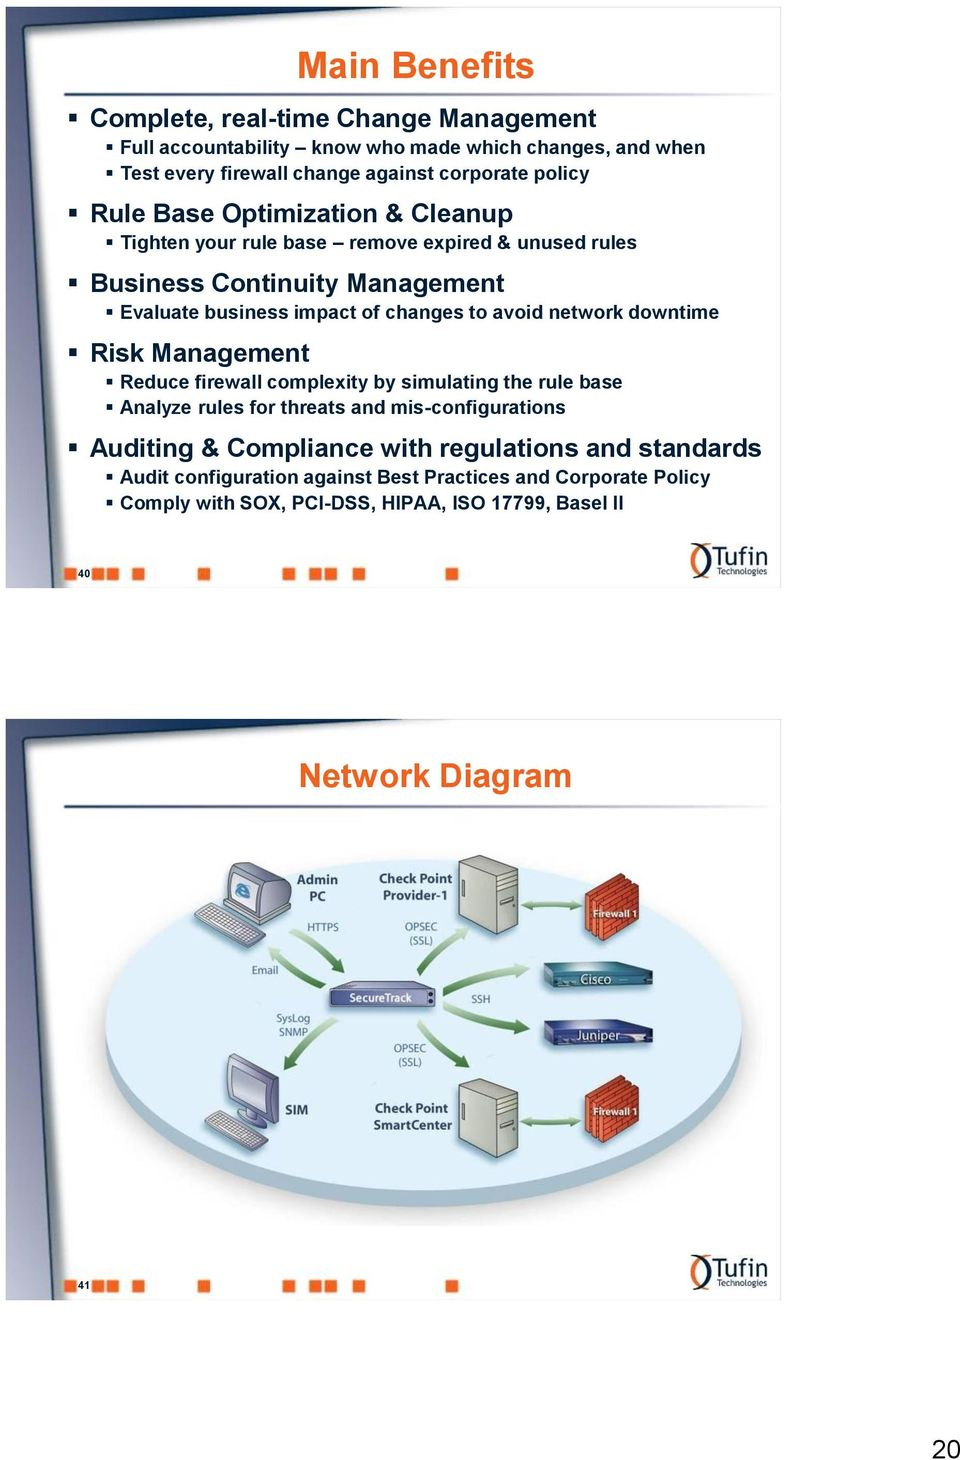 network downtime Risk Management Reduce firewall complexity by simulating the rule base Analyze rules for threats and mis-configurations Auditing & Compliance with